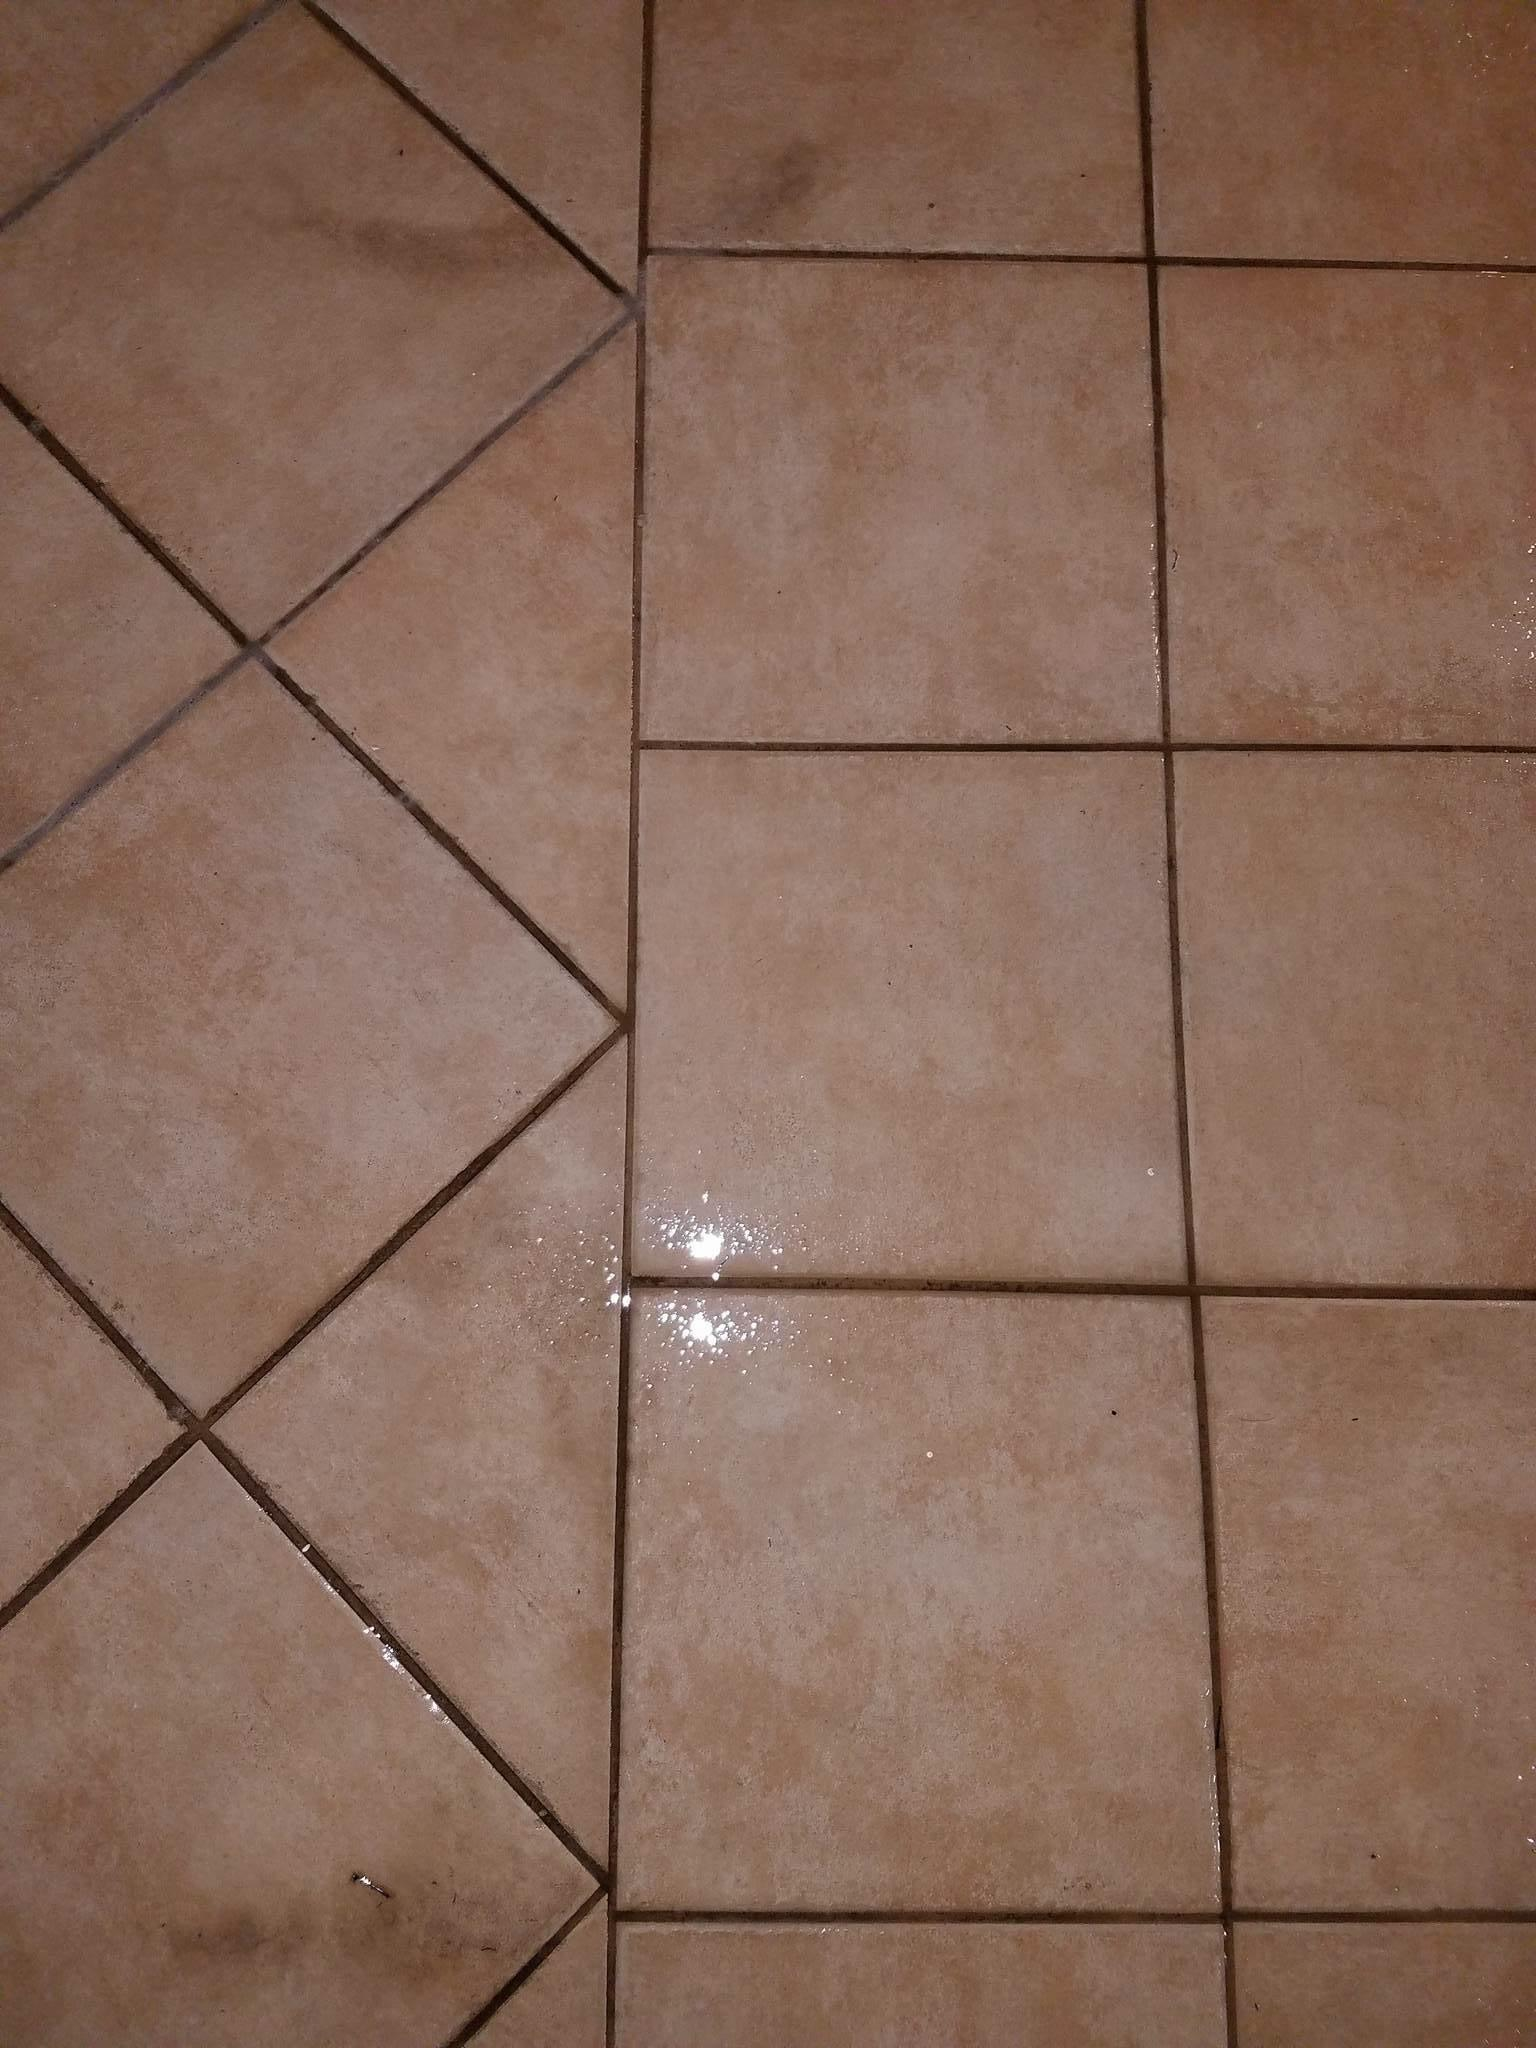 Mccreary Healthy Homes Local Professional Tile Grout